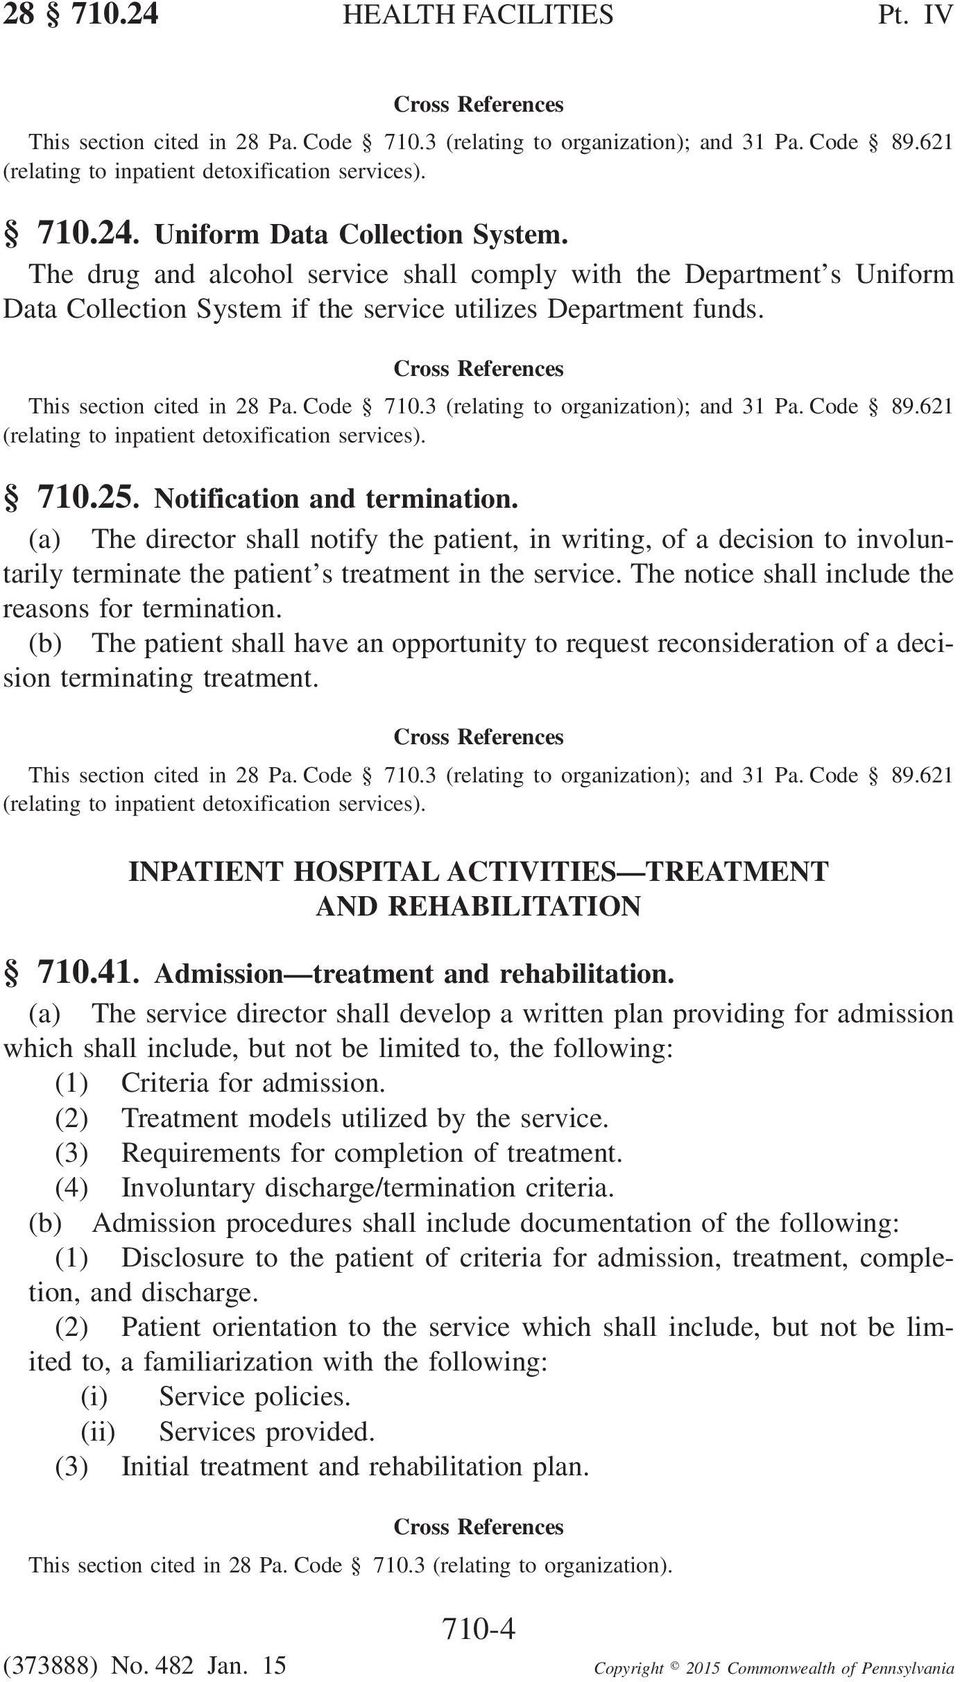 (a) The director shall notify the patient, in writing, of a decision to involuntarily terminate the patient s treatment in the service. The notice shall include the reasons for termination.